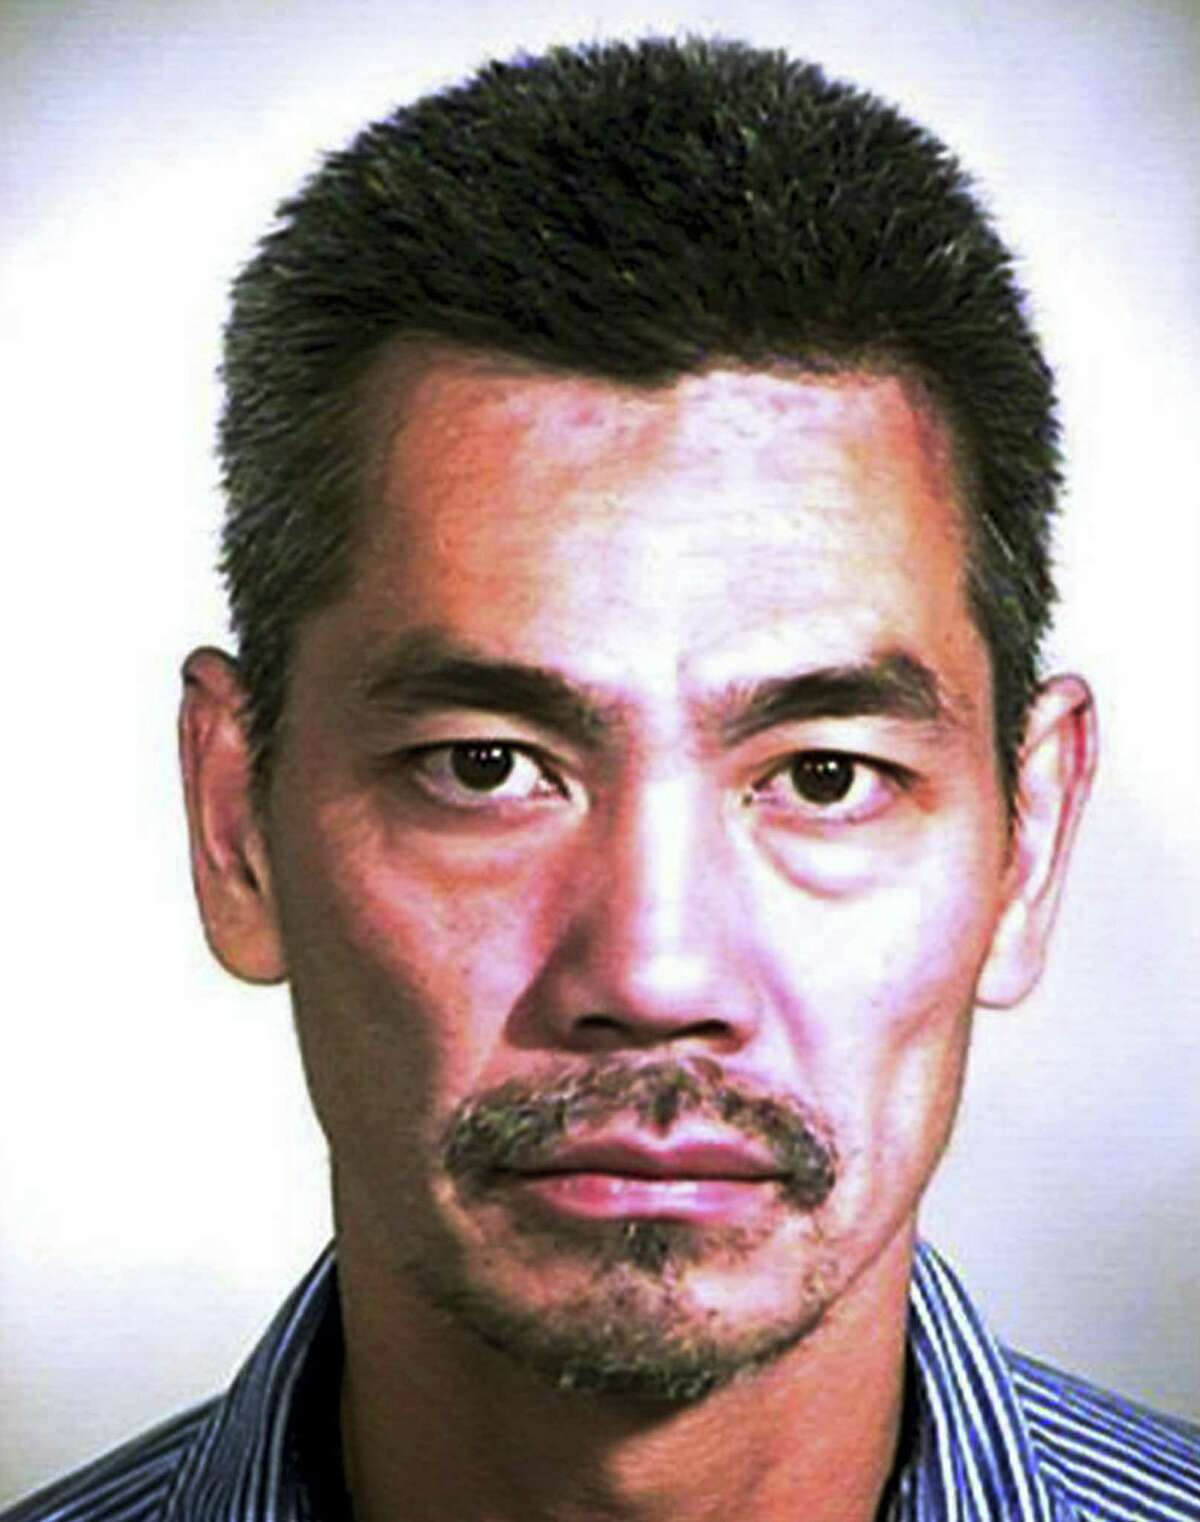 FILE - This undated photo provided by the Orange County Sheriff's Office shows Bac Duong, one of three inmates who escaped Friday, Jan. 22, 2016, from the county's Central Men's Jail in Santa Ana, Calif. Duong has been captured, leaving 2 still at large.